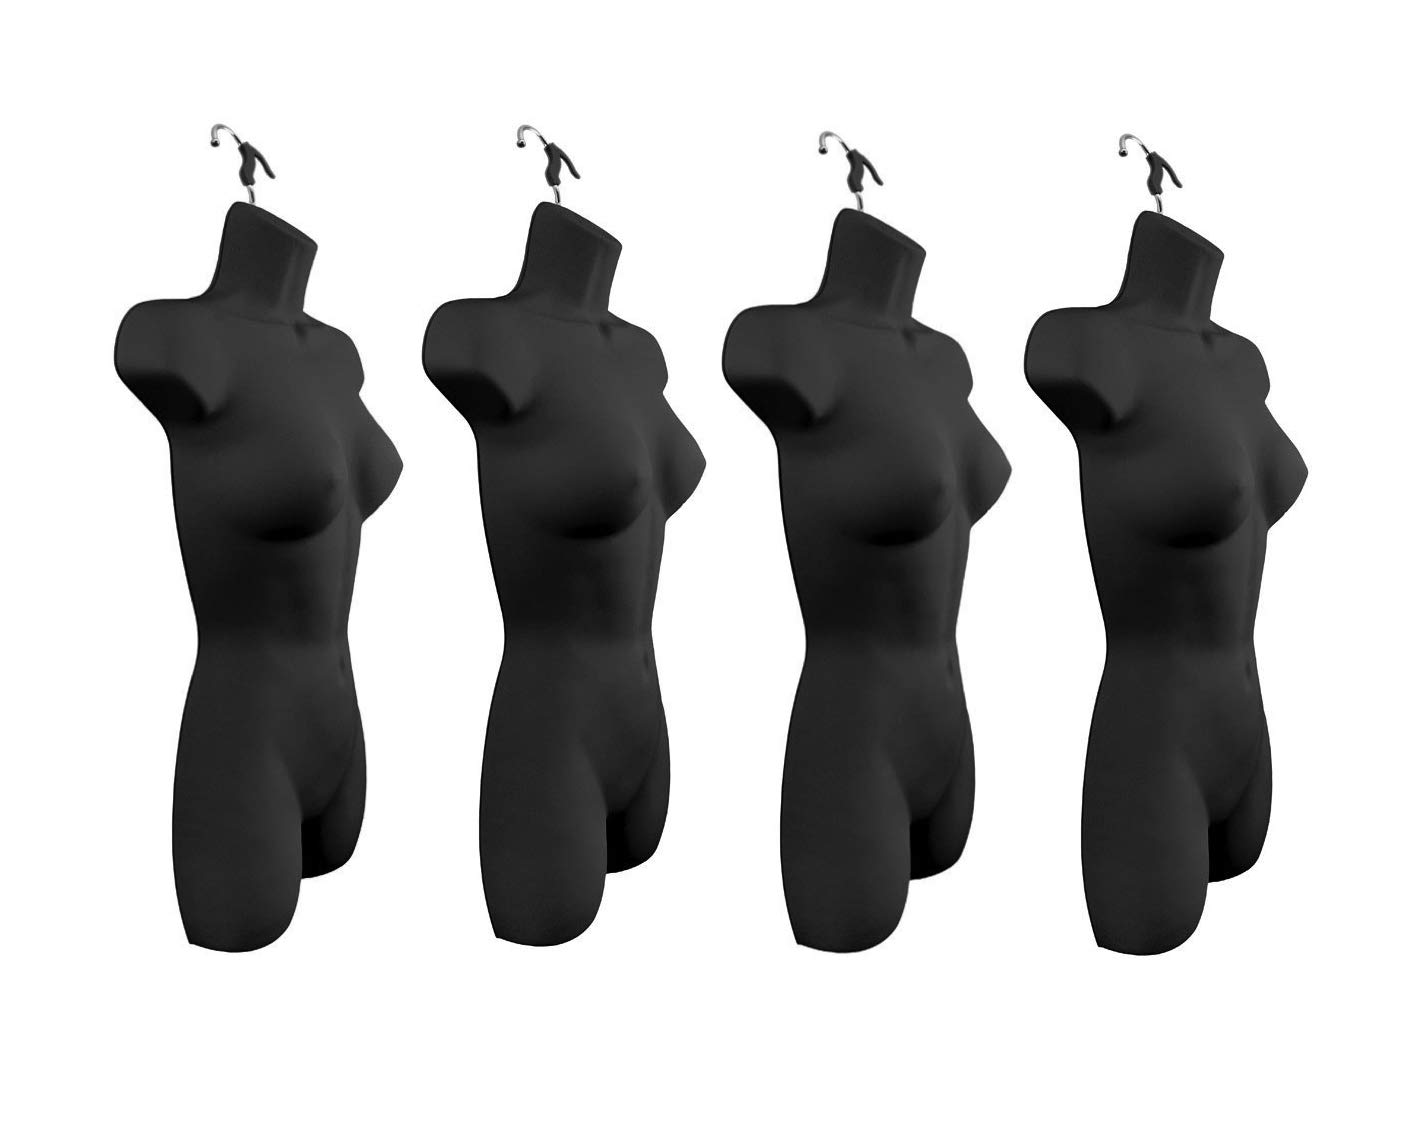 Only Hangers Set of Four Women's Torso Female Plastic Hanging Mannequin Body Forms in Black - Pack of (4) #8081BLACK (PACK OF 4)